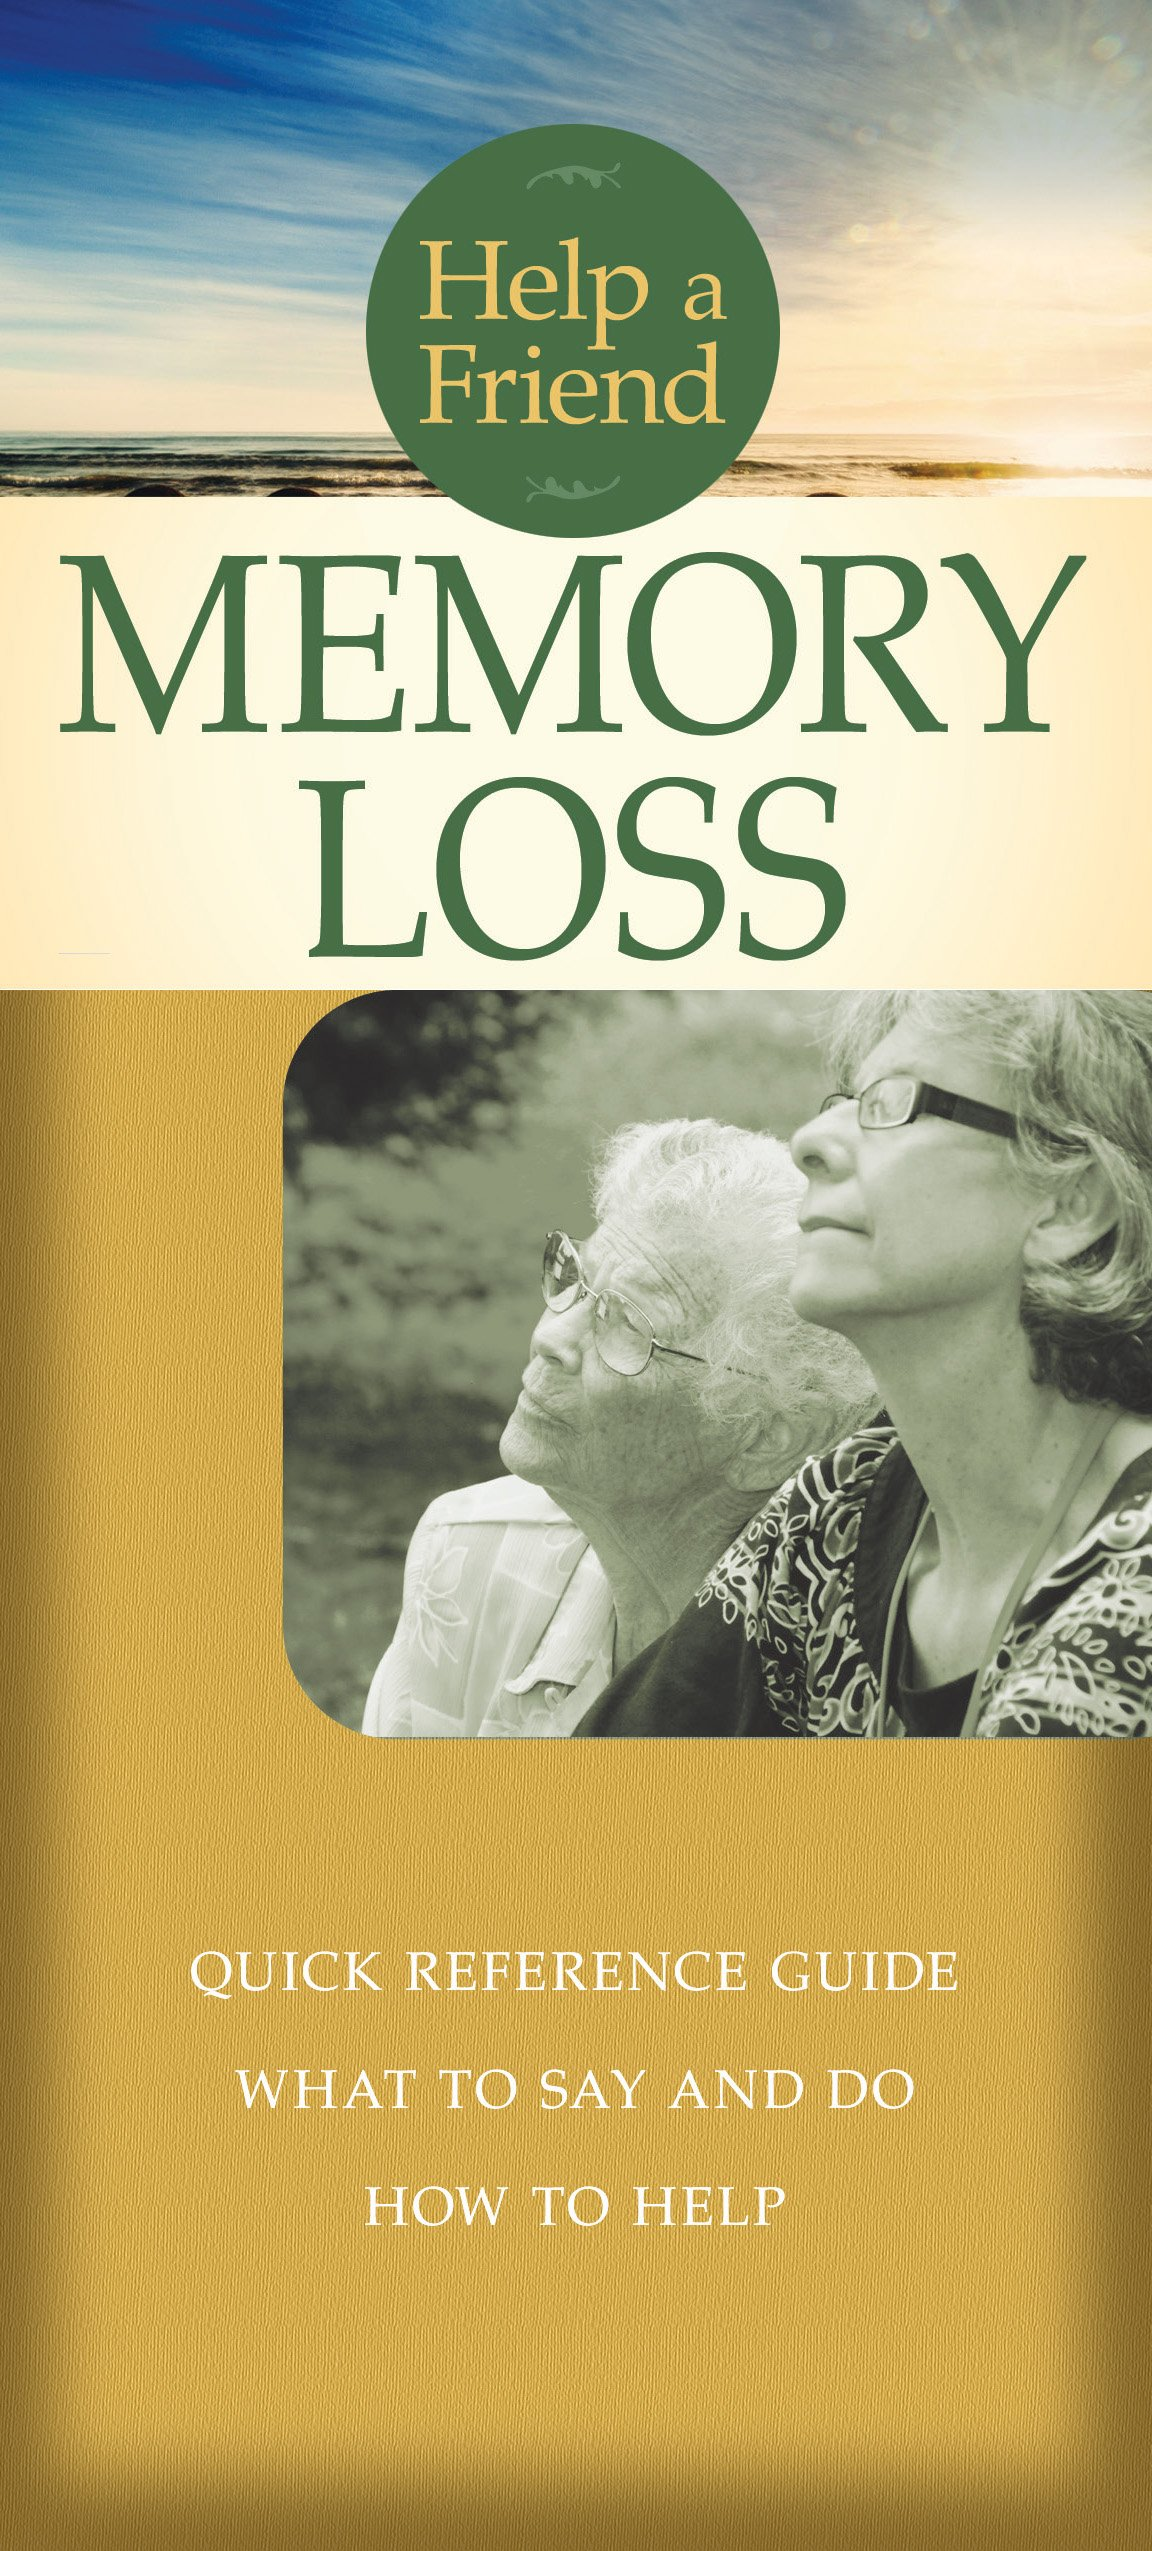 Memory Loss Pamphlet Help Friend product image